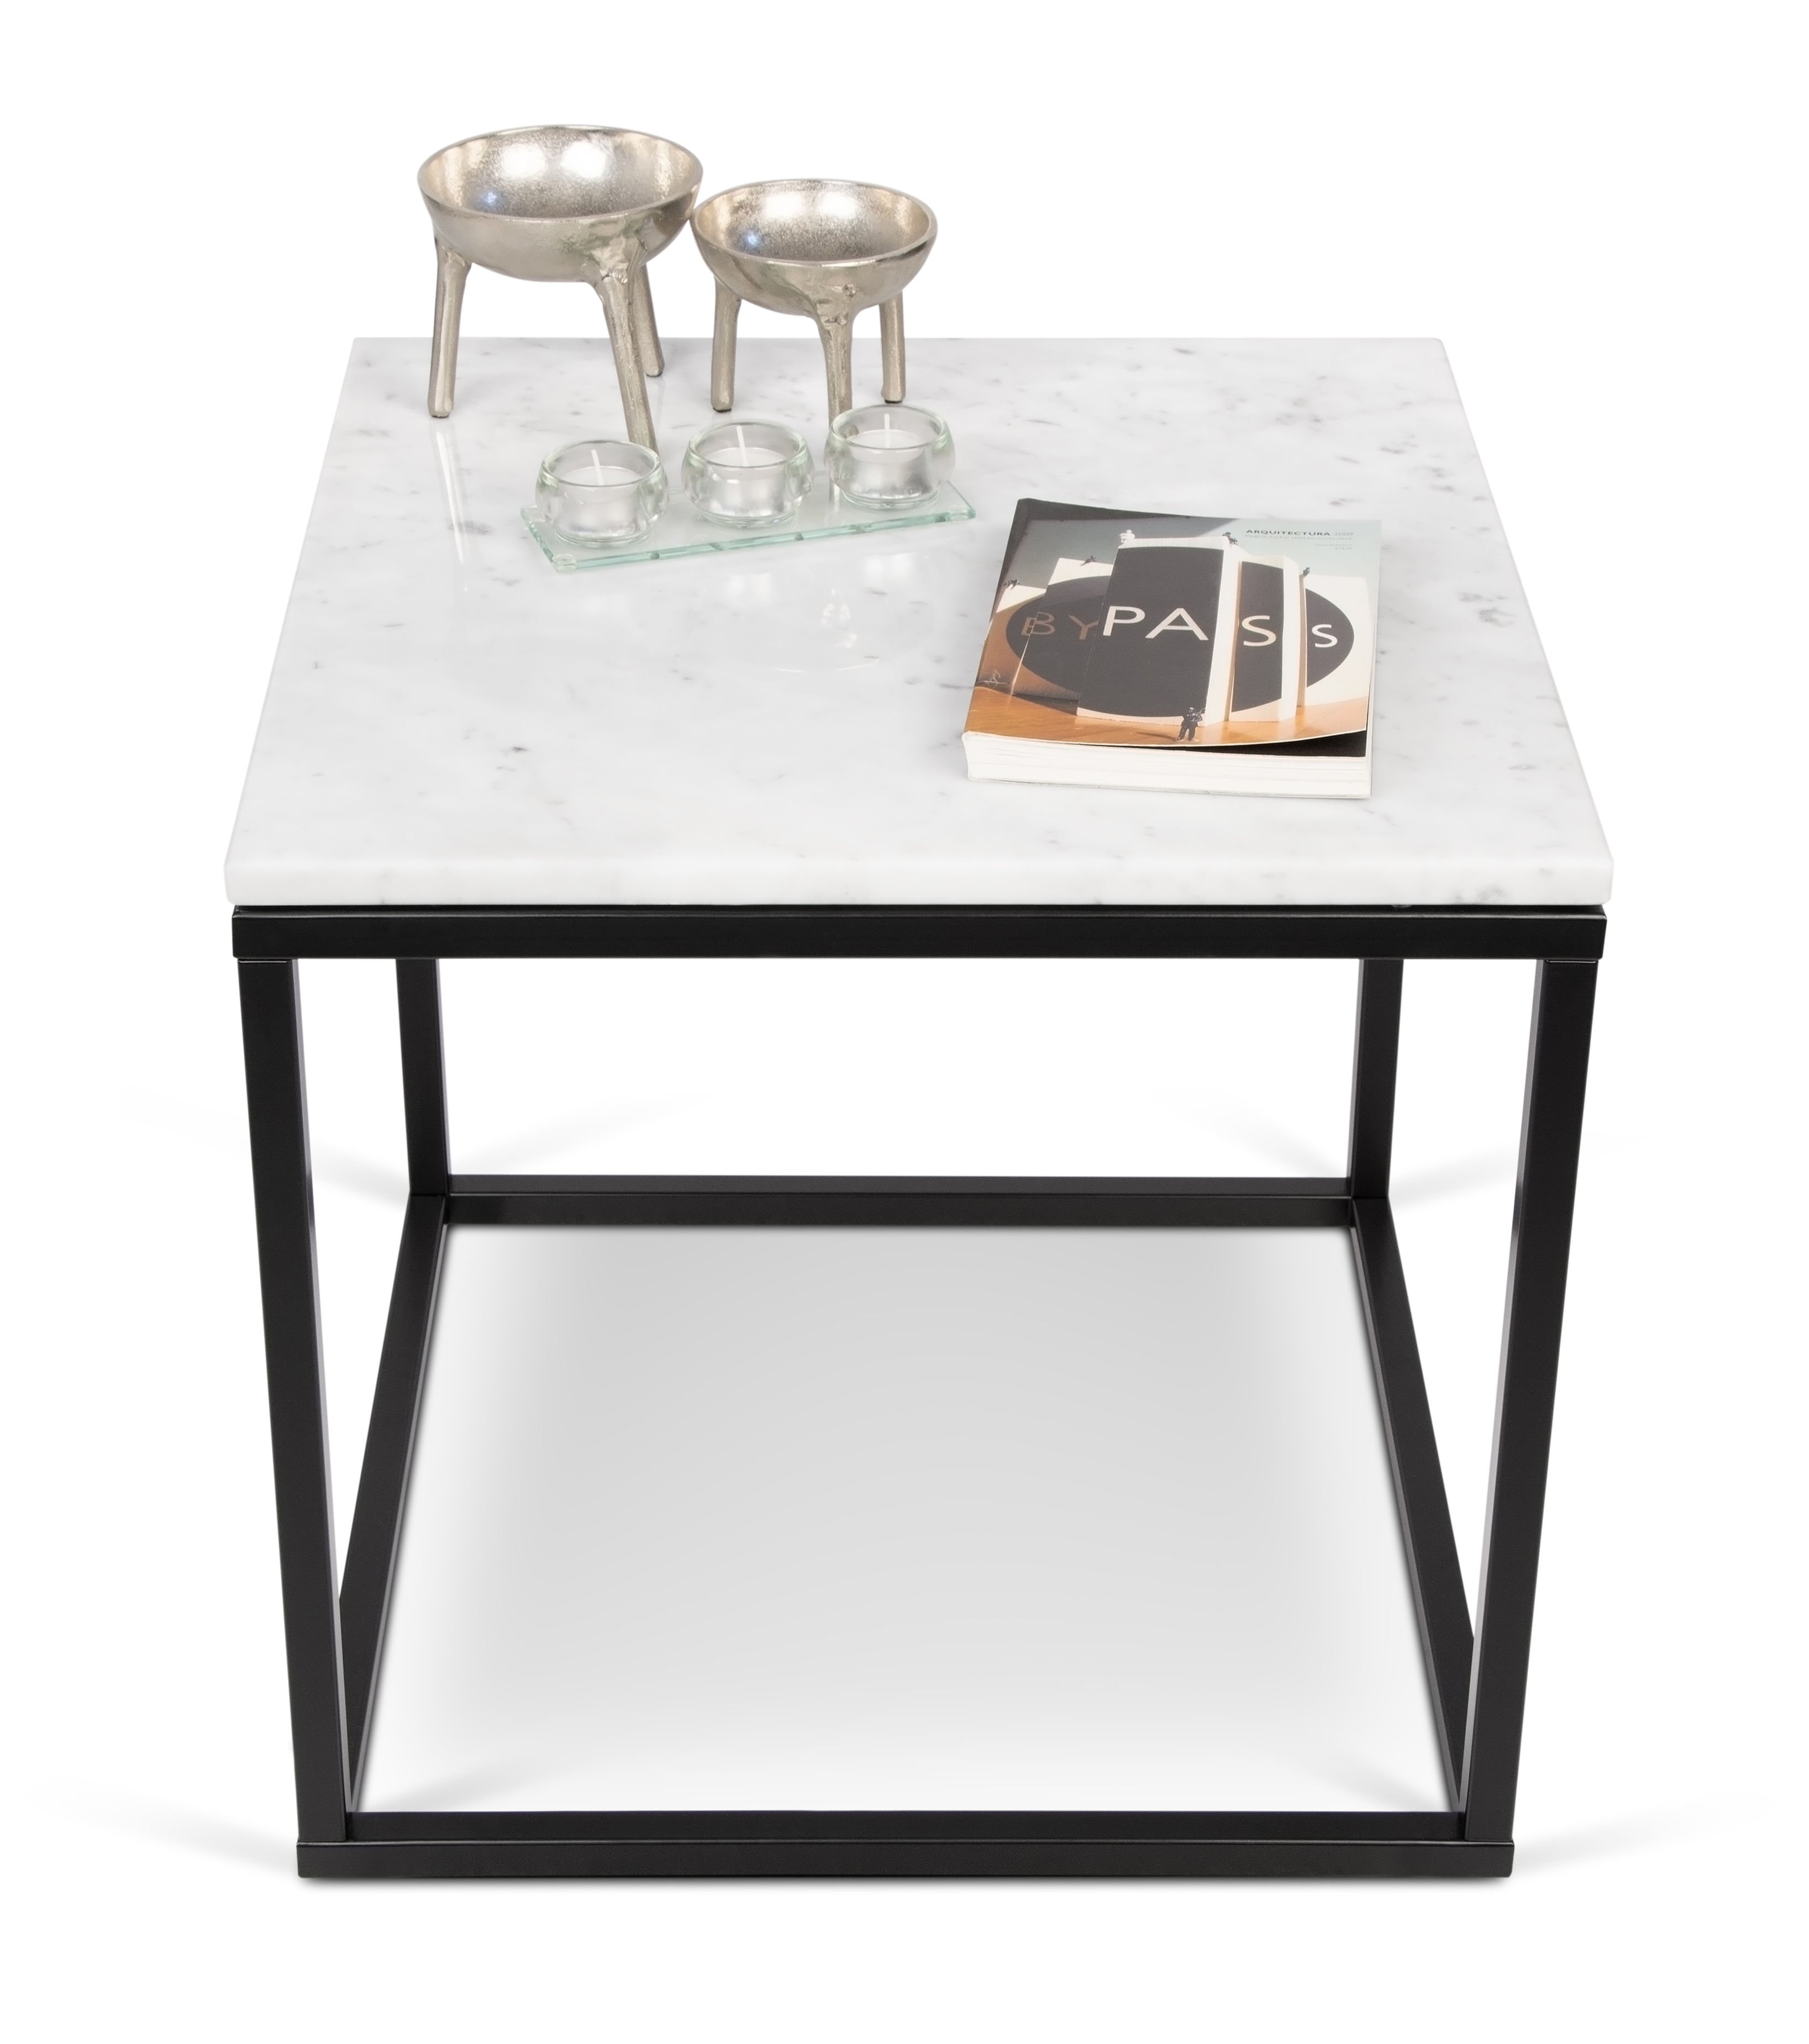 Marble Coffee Table Uk: 50 X 50cm White Marble